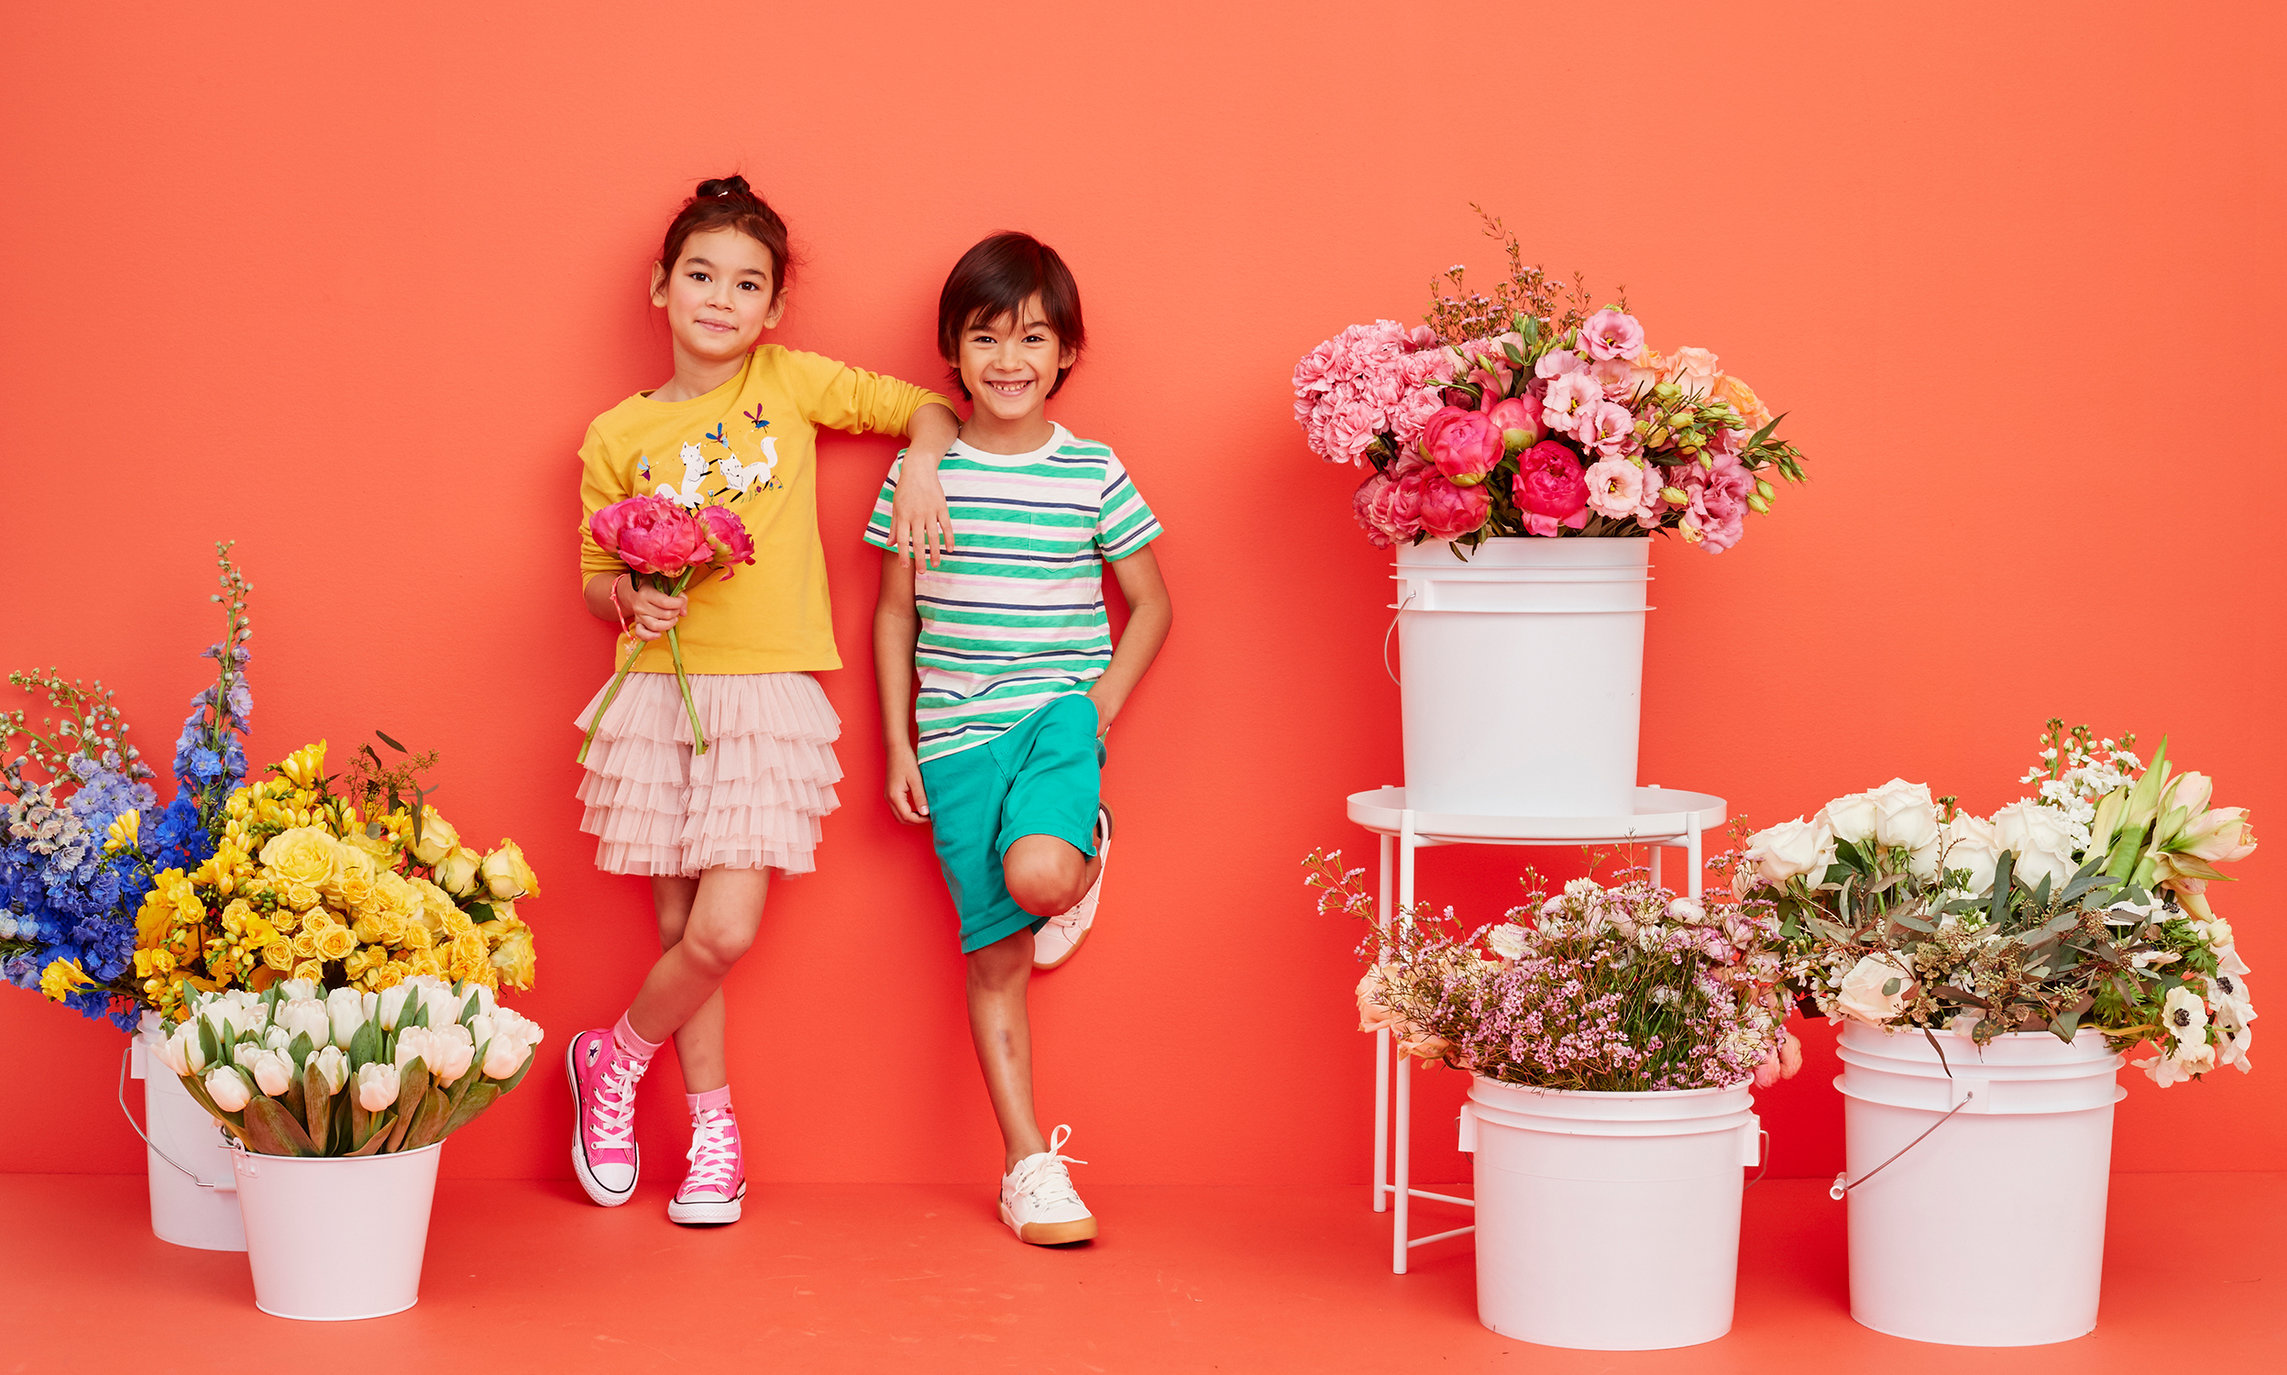 Fashion_Spring_2_Kids_0219.jpg